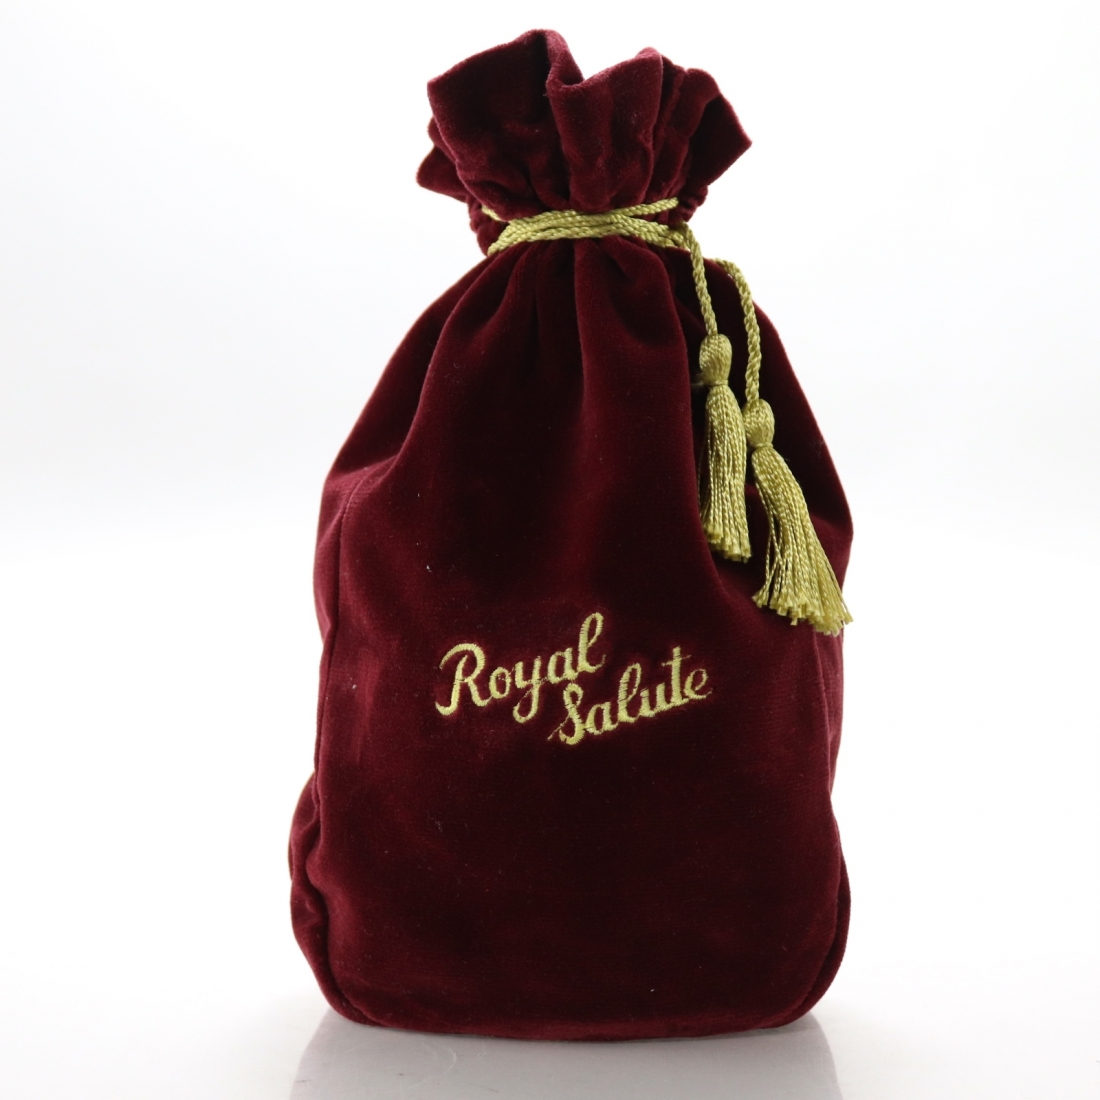 Chivas 21 Year Old Royal Salute 1 Litre / Ruby Flagon